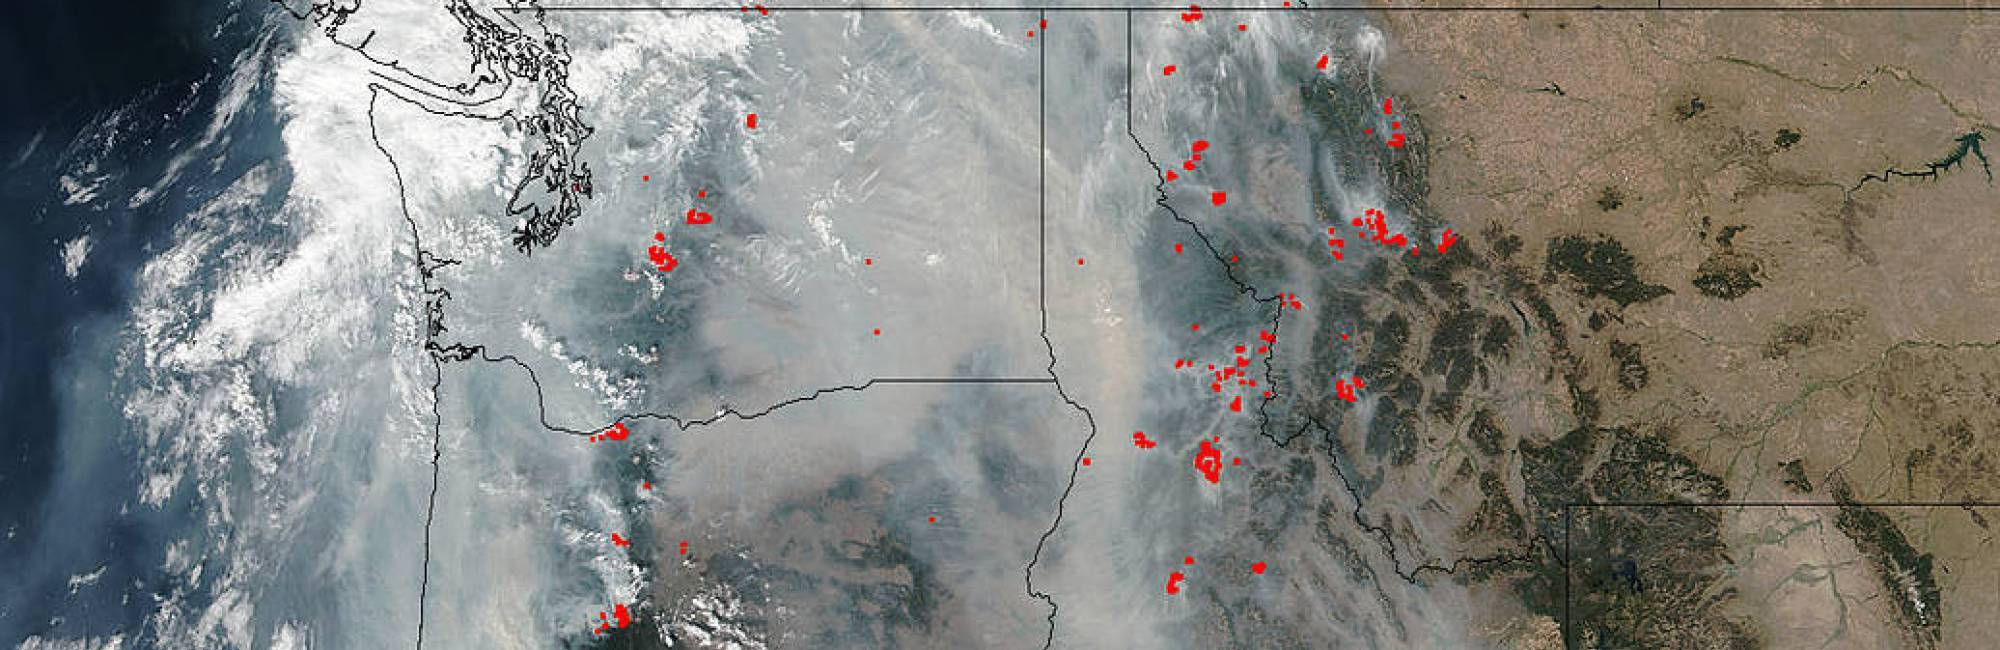 Image of the Suomi NPP satellite's Visible Infrared Imaging Radiometer Suite (VIIRS) instrument's view of the smoke obscuring much of the Pacific Northwest on September 05, 2017. Actively burning areas detected by VIIRS are outlined in red.